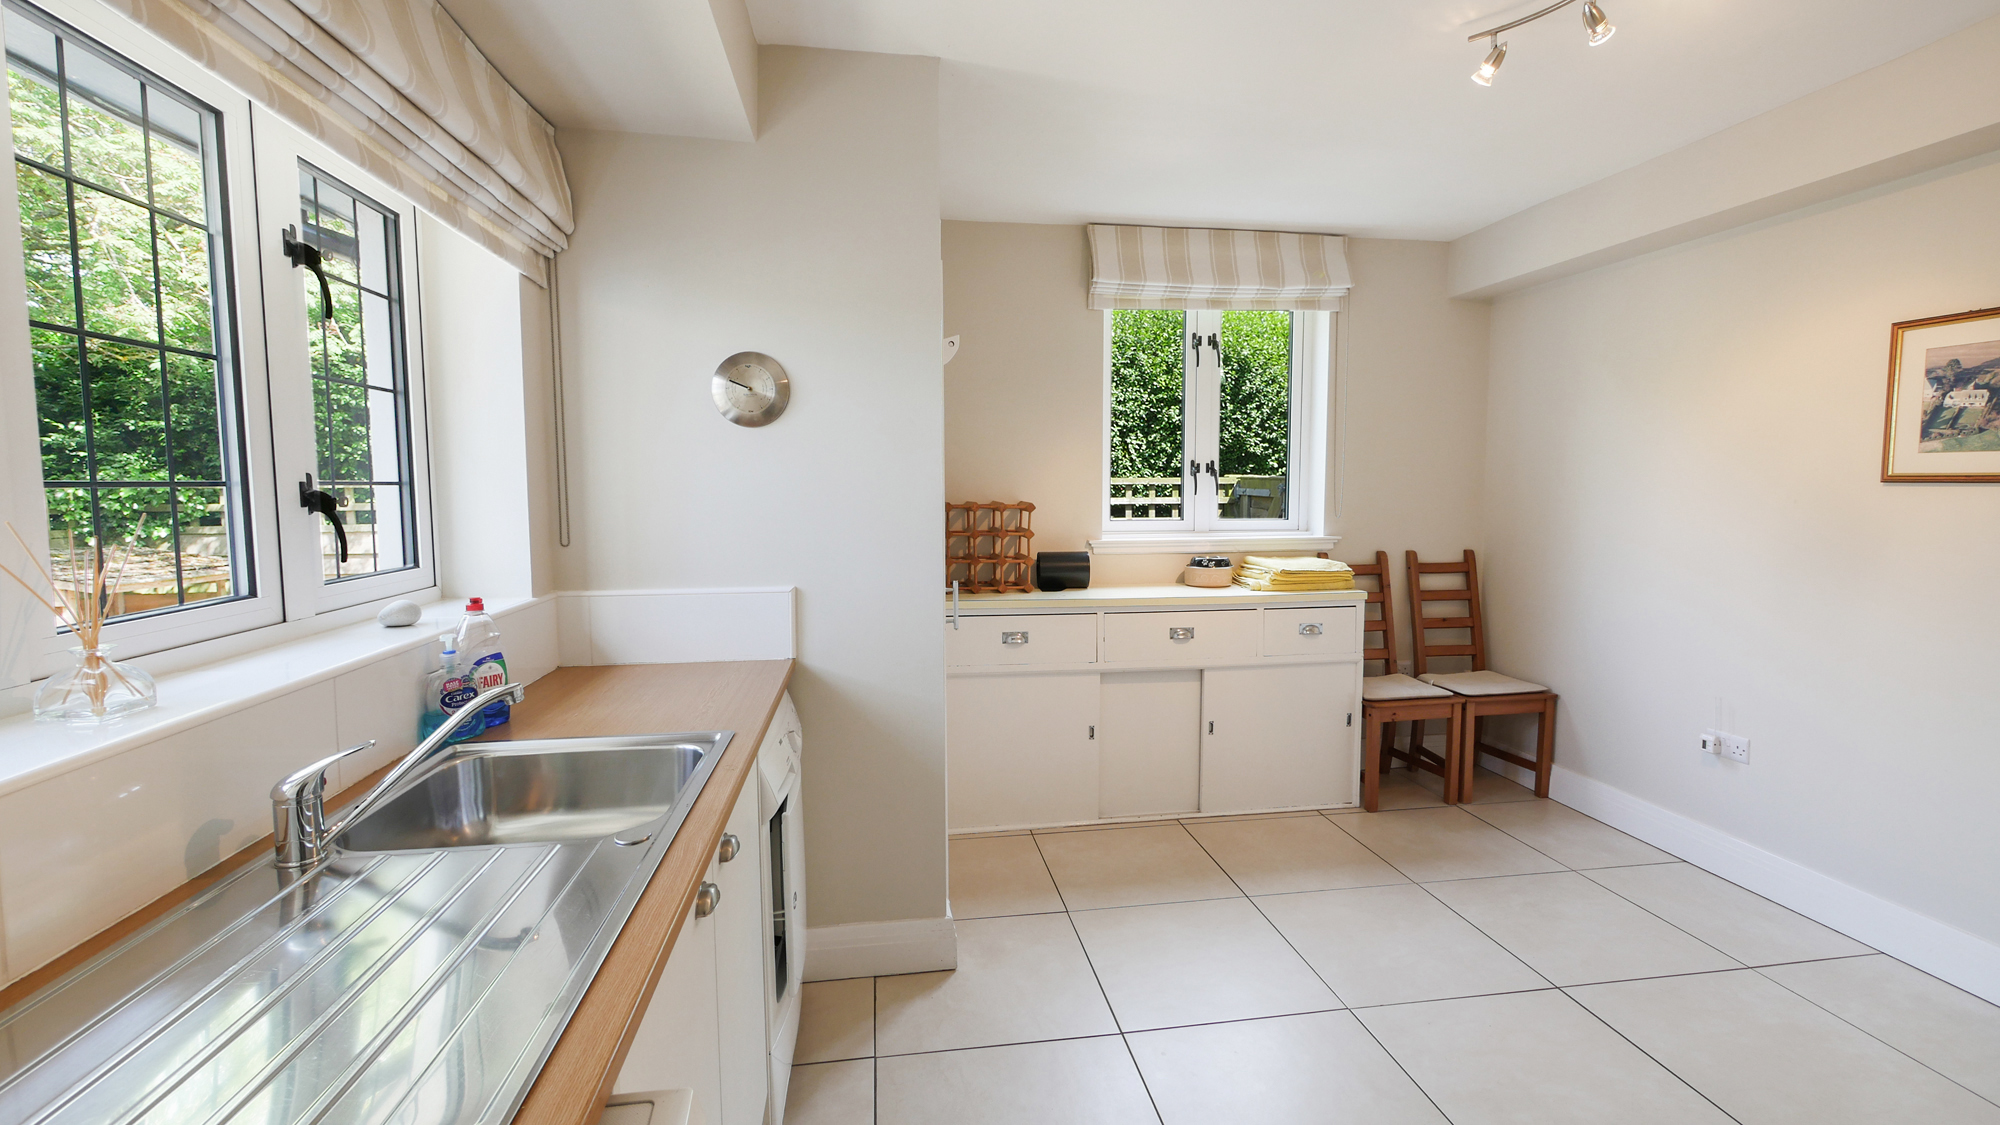 large self catering holiday cottages pet friendly with large garden and real fire